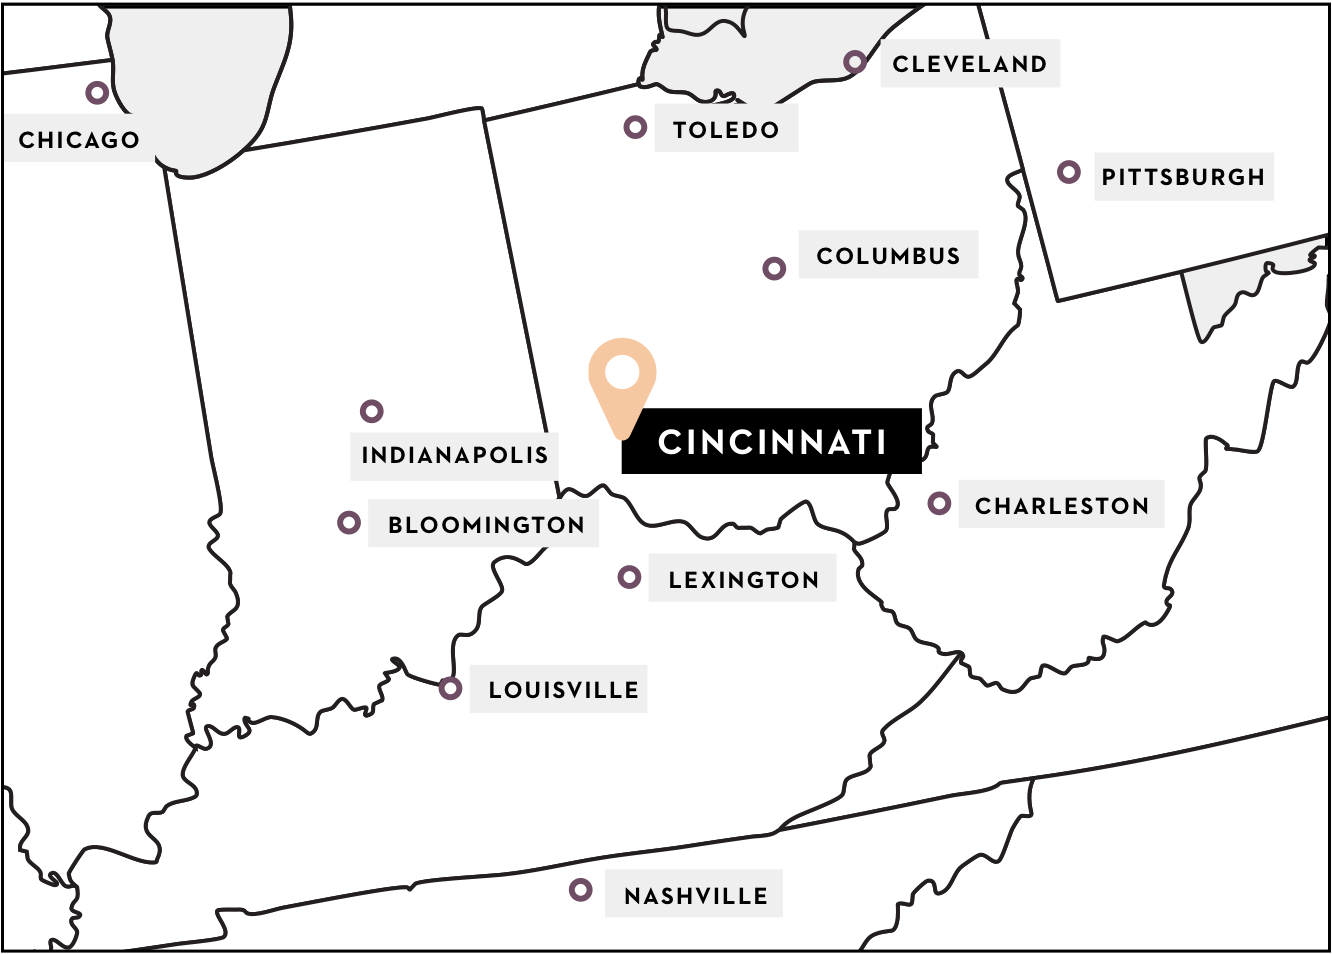 Map of the midwest with Cincinnati highlighted in the middle